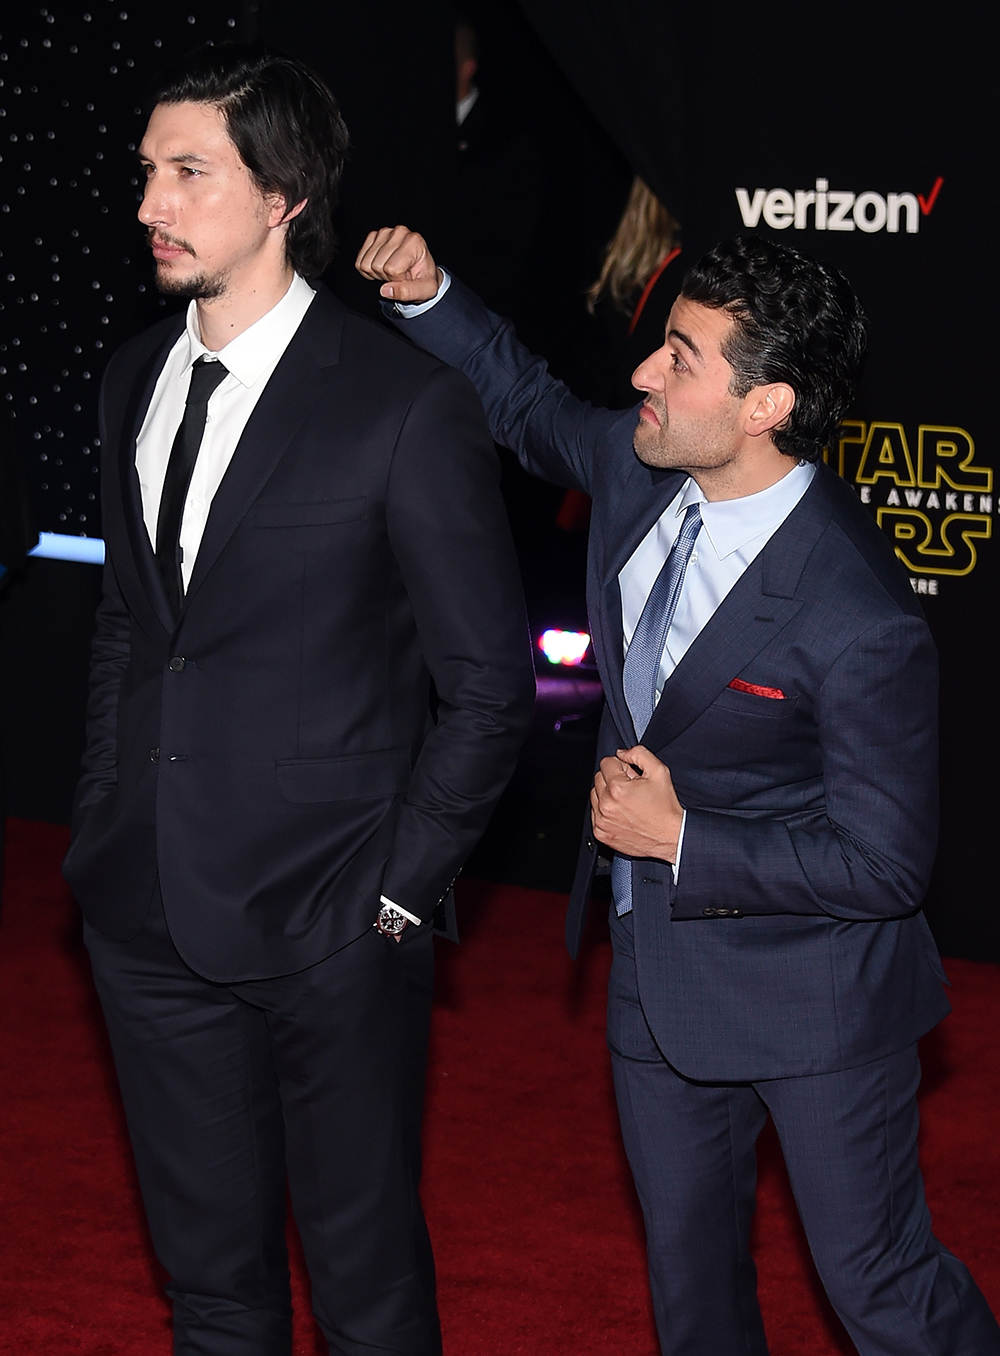 """HOLLYWOOD, CA - DECEMBER 14: Actor Adam Driver (L) is photobombed by actor Oscar Isaac as they attend the premiere of Walt Disney Pictures and Lucasfilm's """"Star Wars: The Force Awakens"""" at the Dolby Theatre on December 14, 2015 in Hollywood, California. Ethan Miller/Getty Images/AFP"""